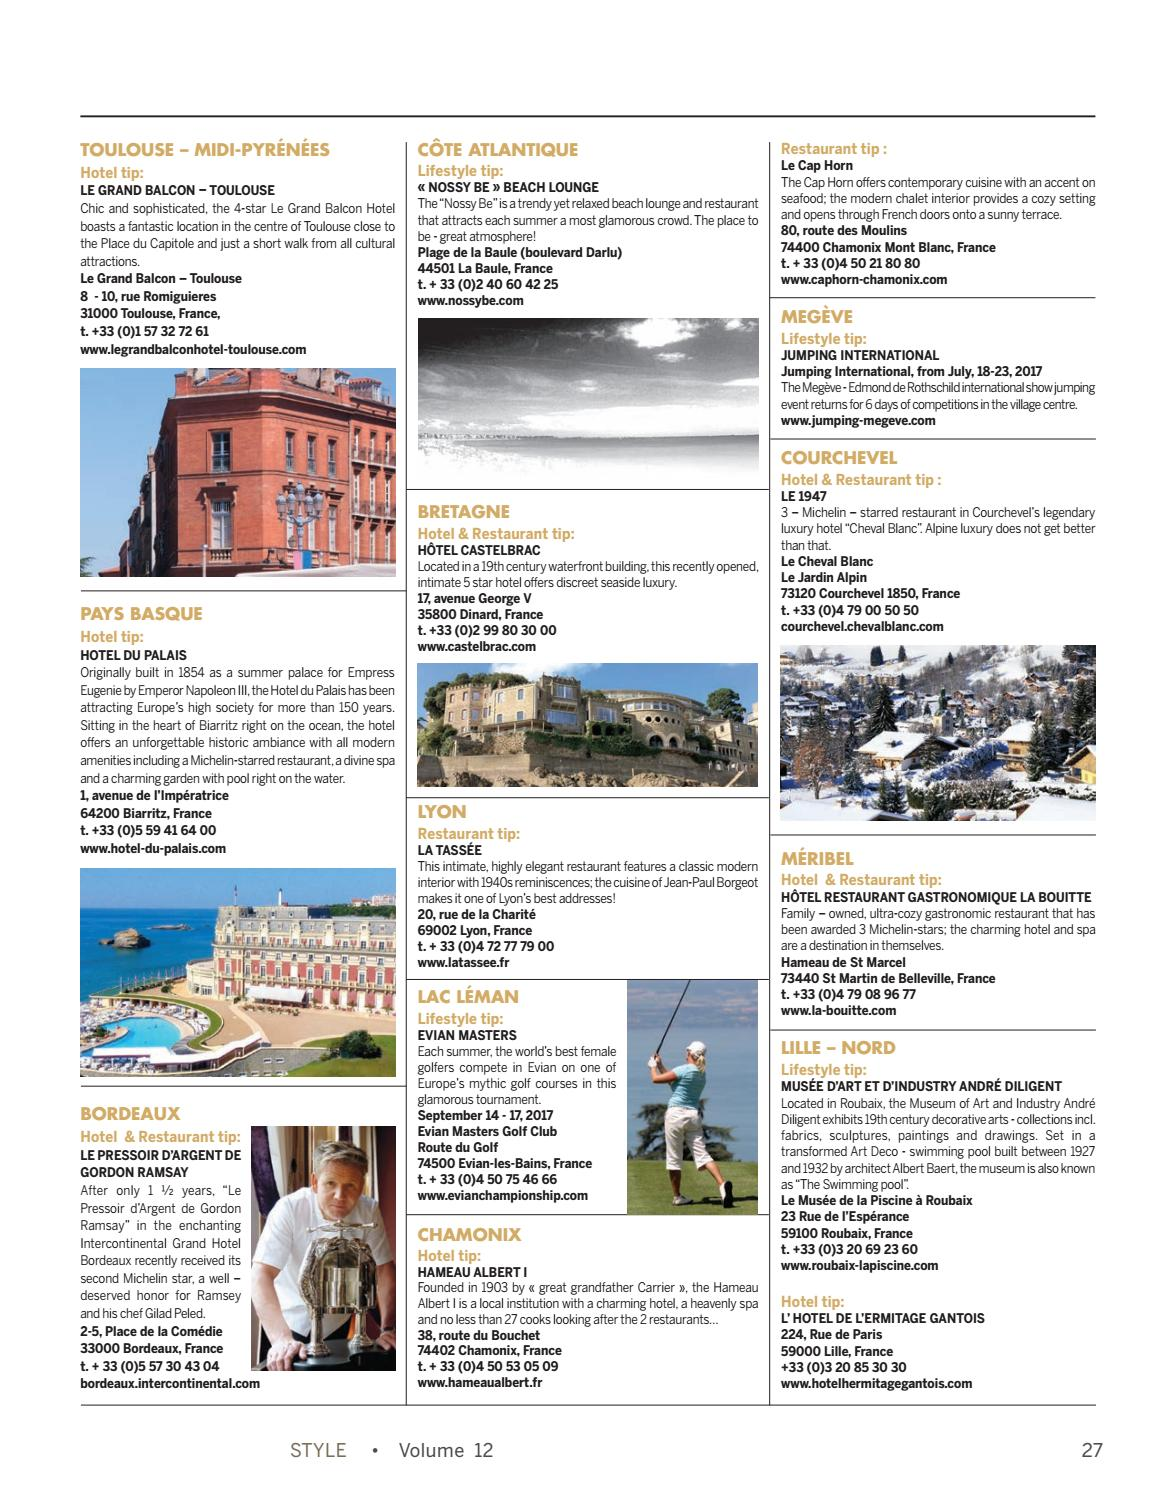 Style Volumen 12 By Sotheby S International Realty France Issuu